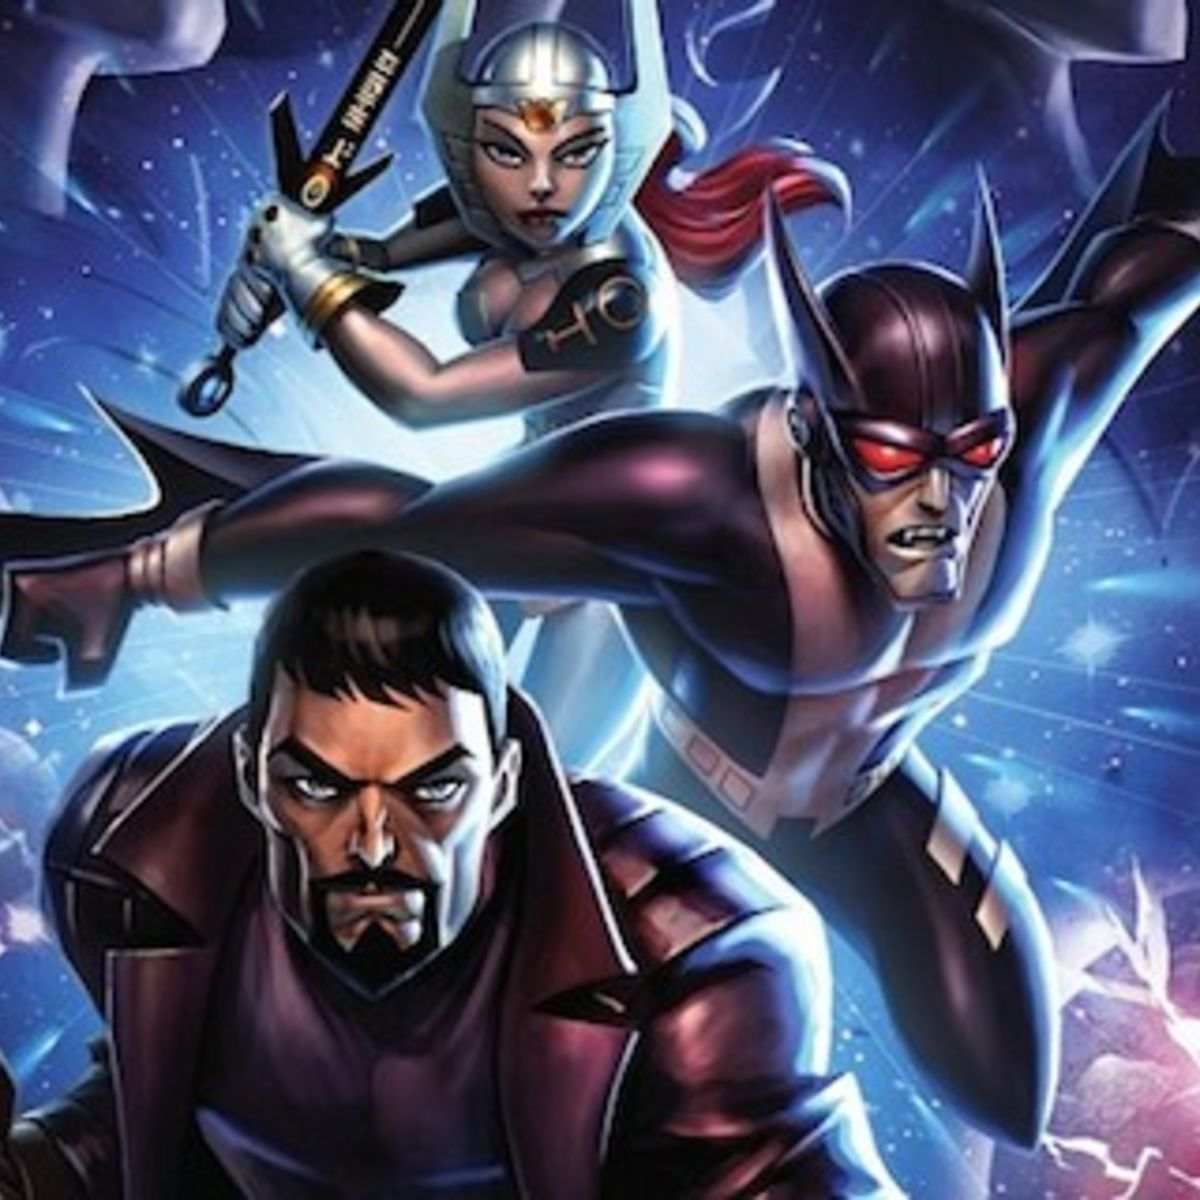 Justice-League-Gods-and-Monsters-Clip.jpg